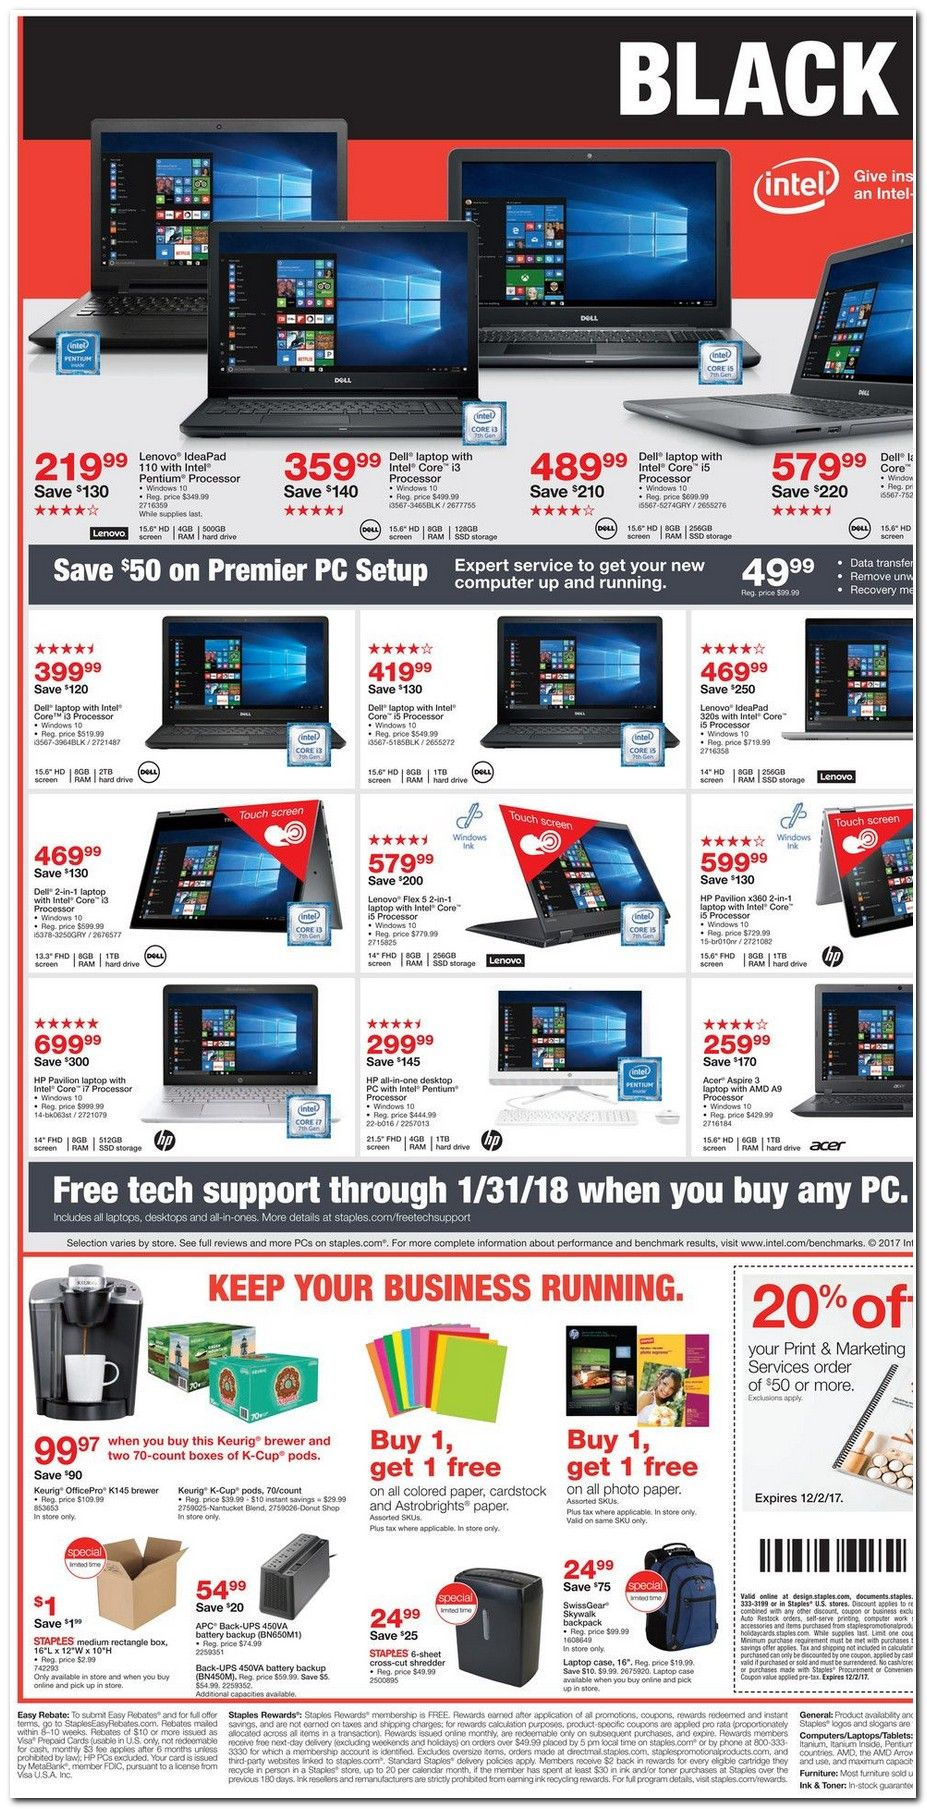 Staples Black Friday 2018 Ads And Deals Browse The Staples Black Friday 2018 Ad Scan And The Complete Product By Product Sales Listing Staples Blackfriday